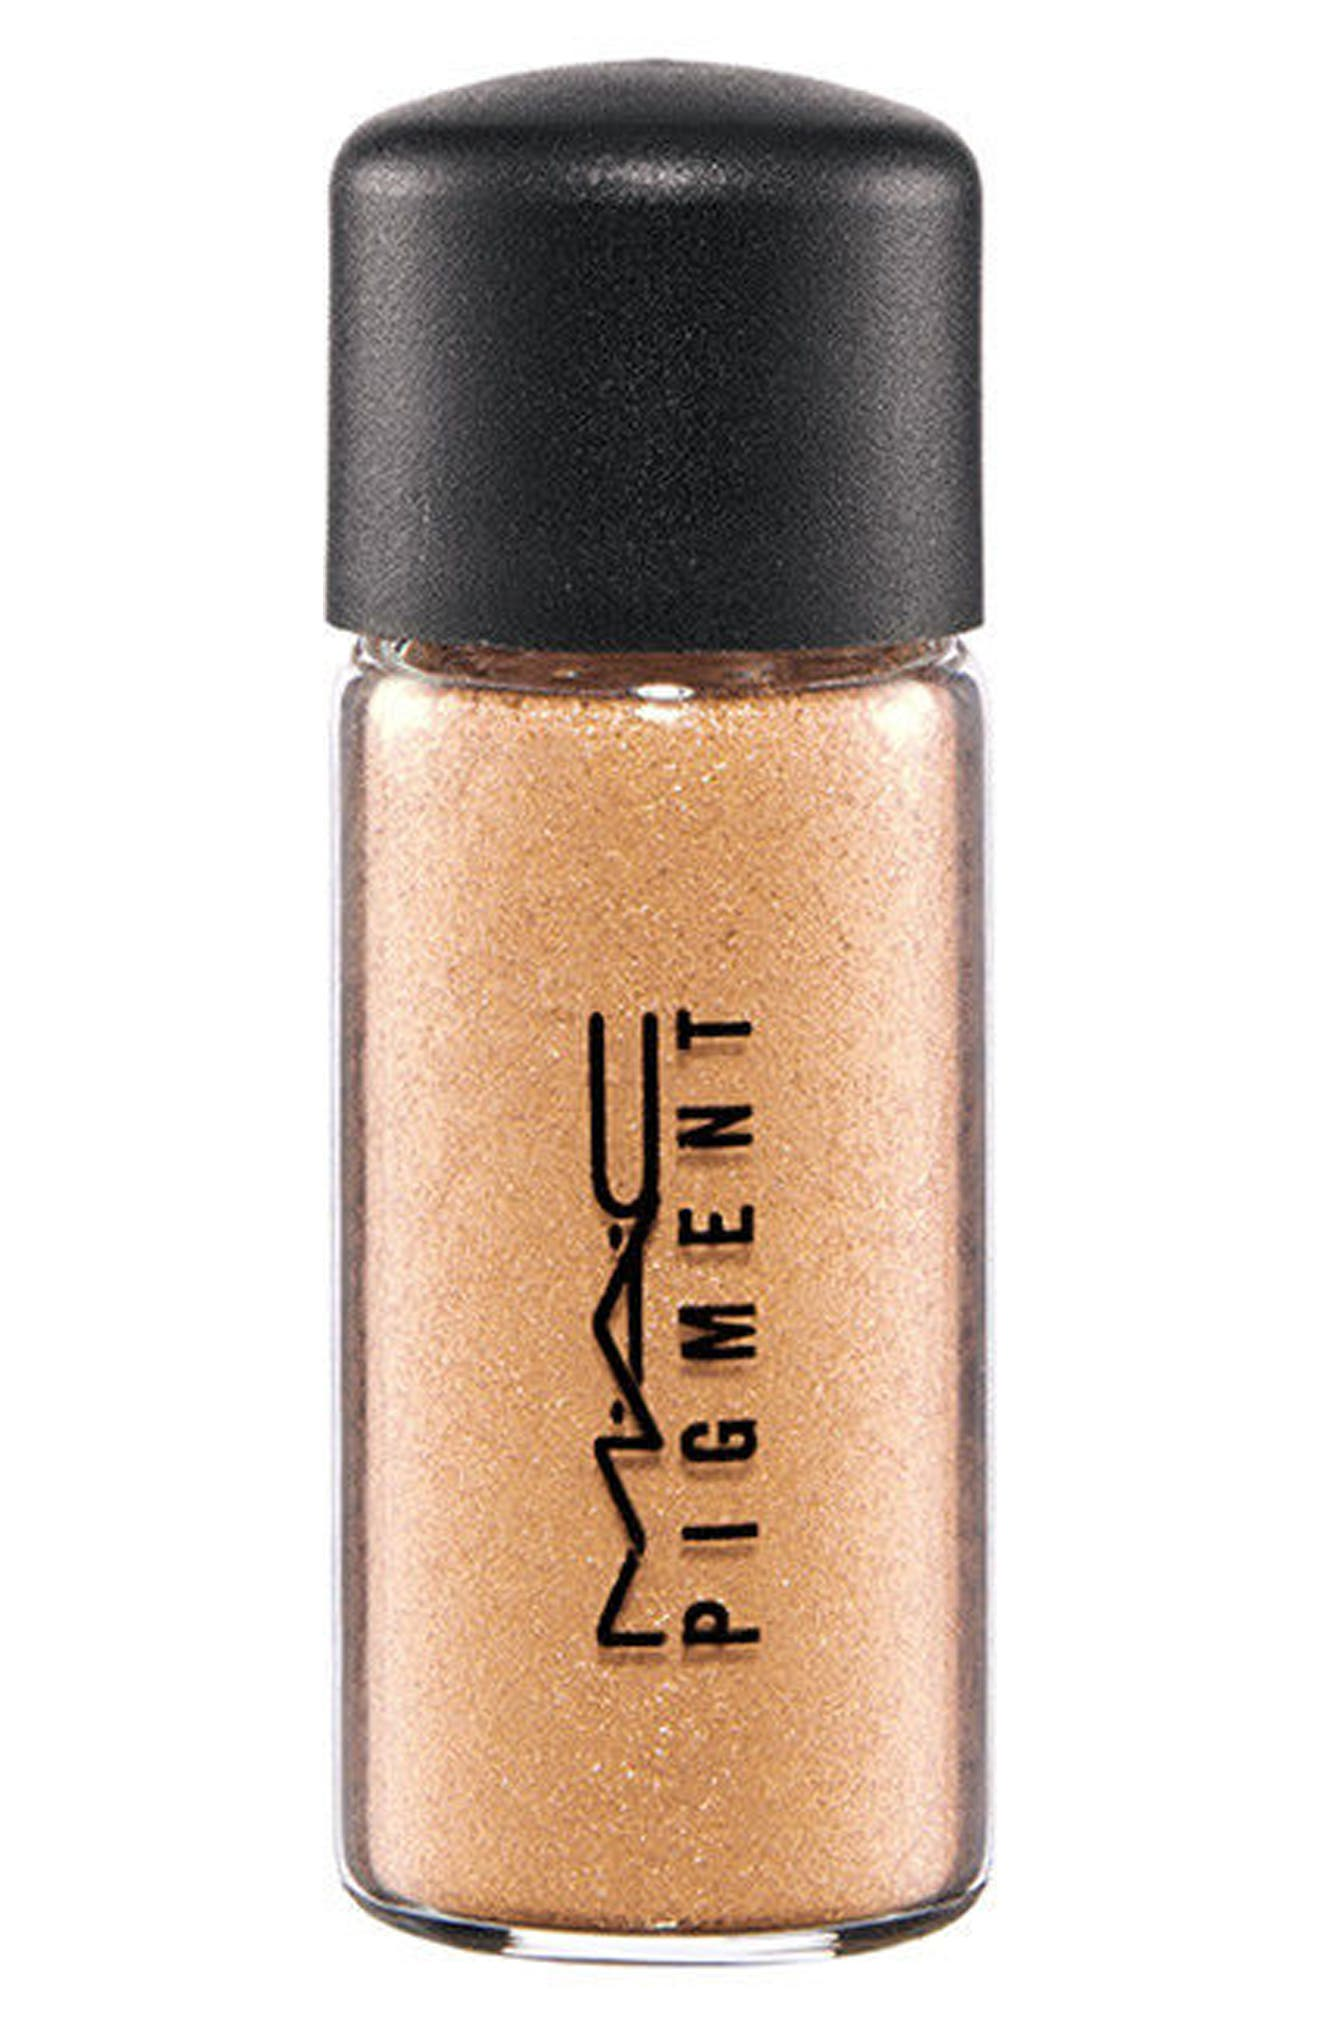 MAC Little MAC Pigment